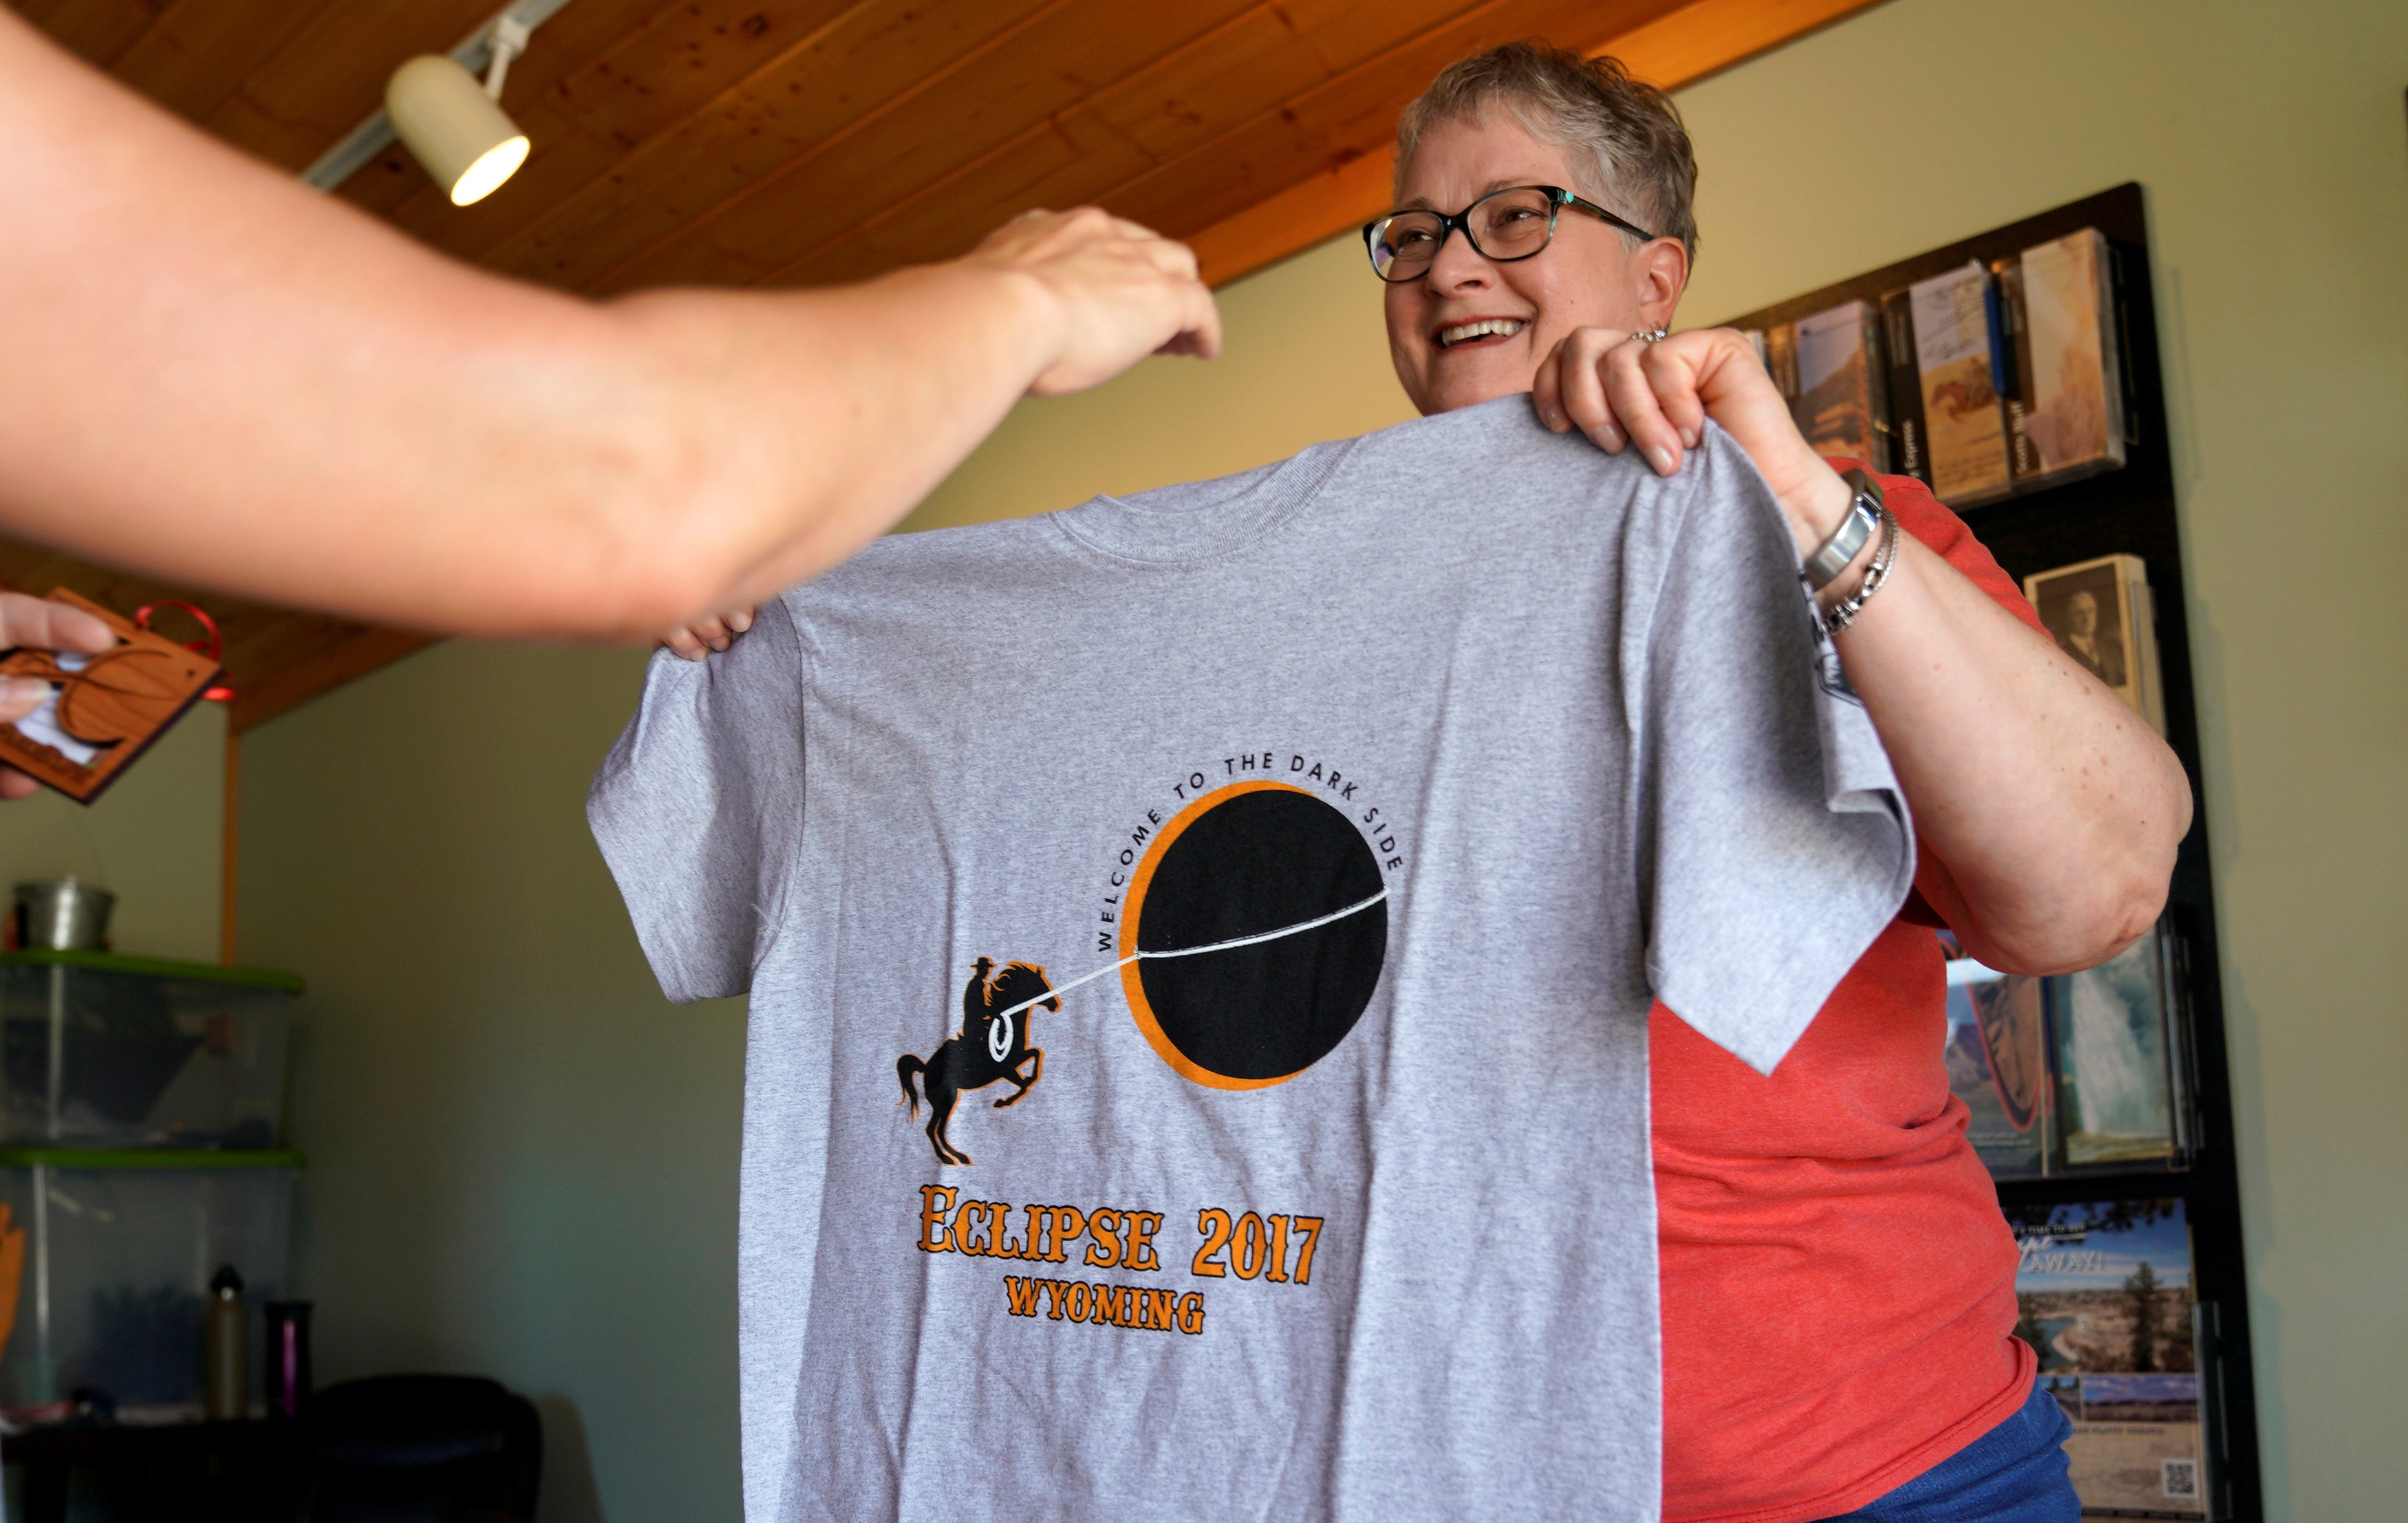 Sue Martindale displays an eclipse t-shirt for sale in Guernsey, Wyoming U.S. August 20, 2017. REUTERS/Rick Wilking NO RESALES. NO ARCHIVES.